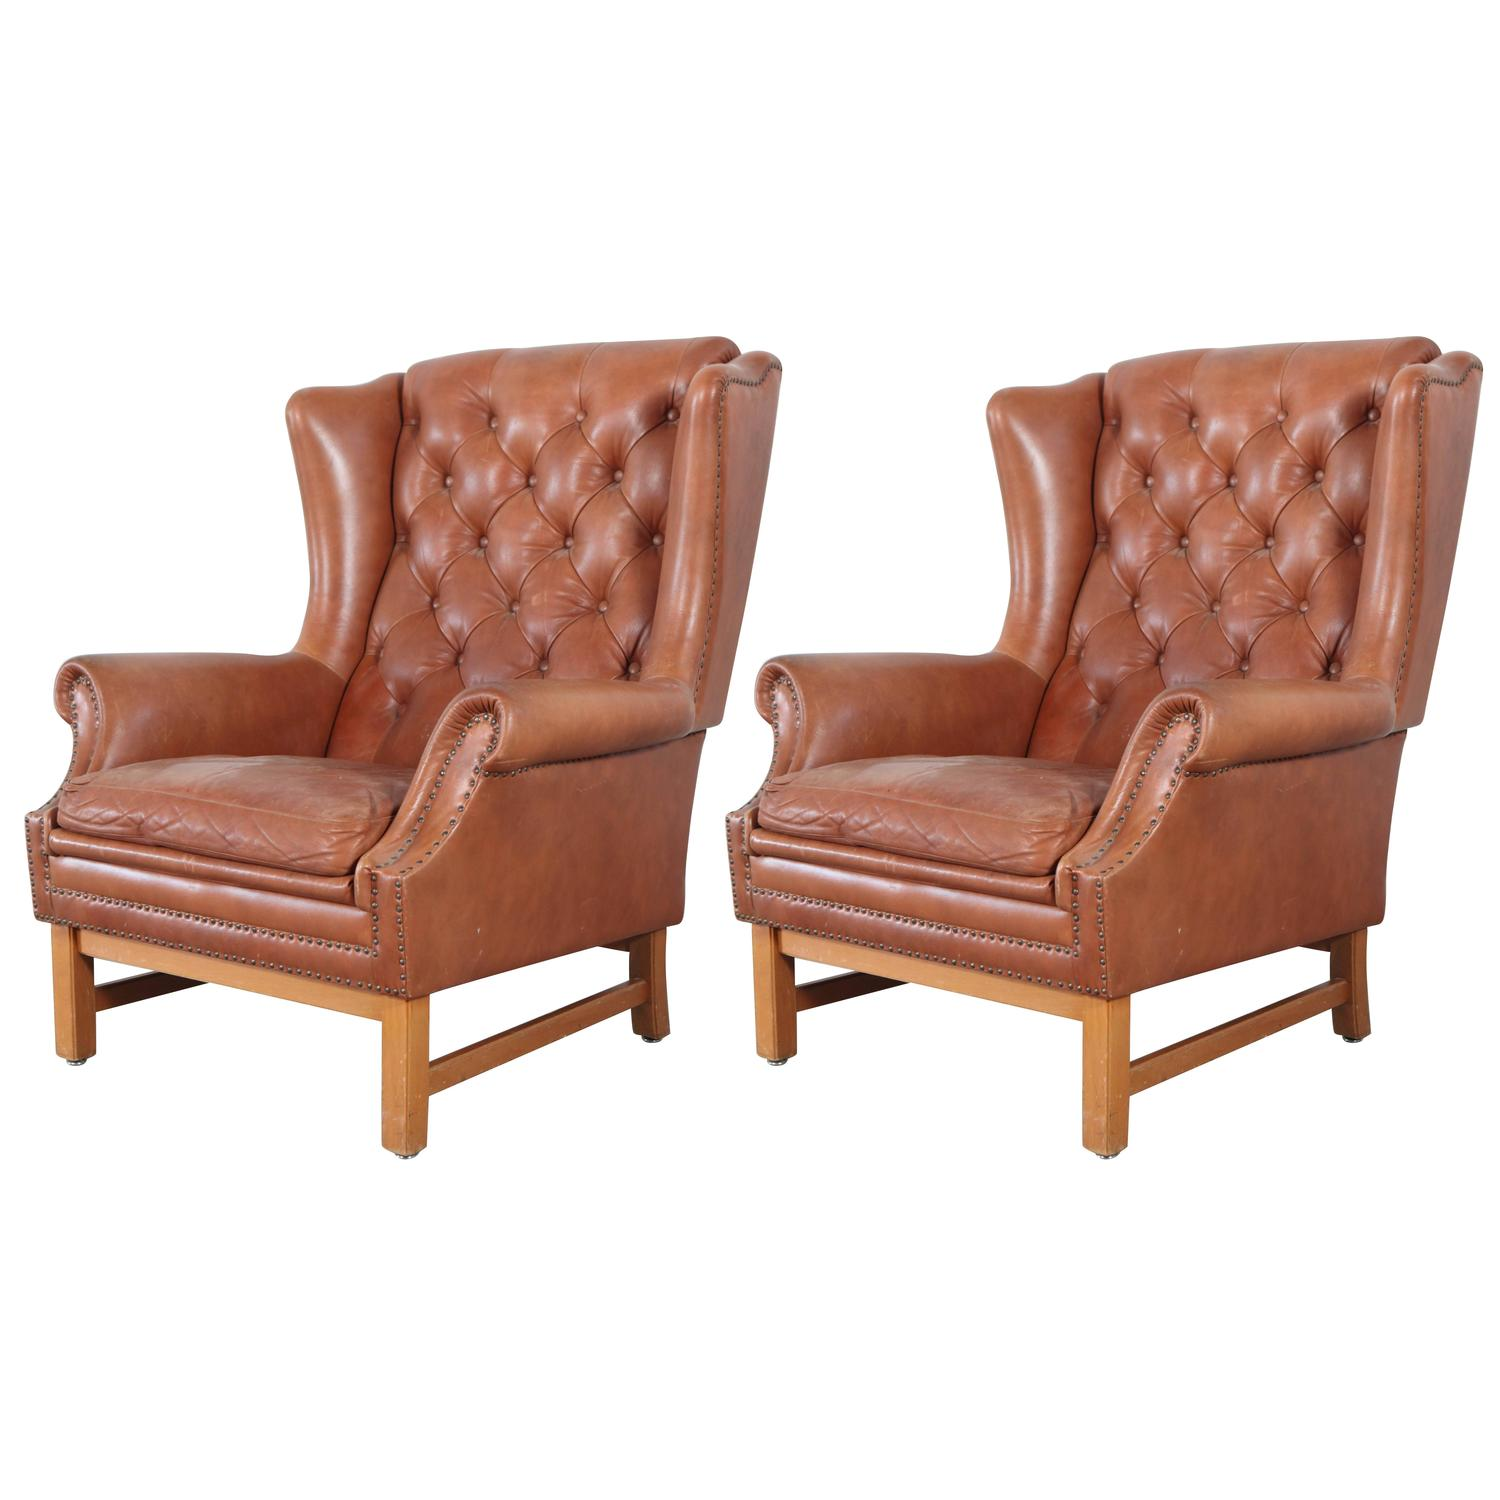 nailhead wingback chair small lift chairs chippendale style leather tufted wing back with